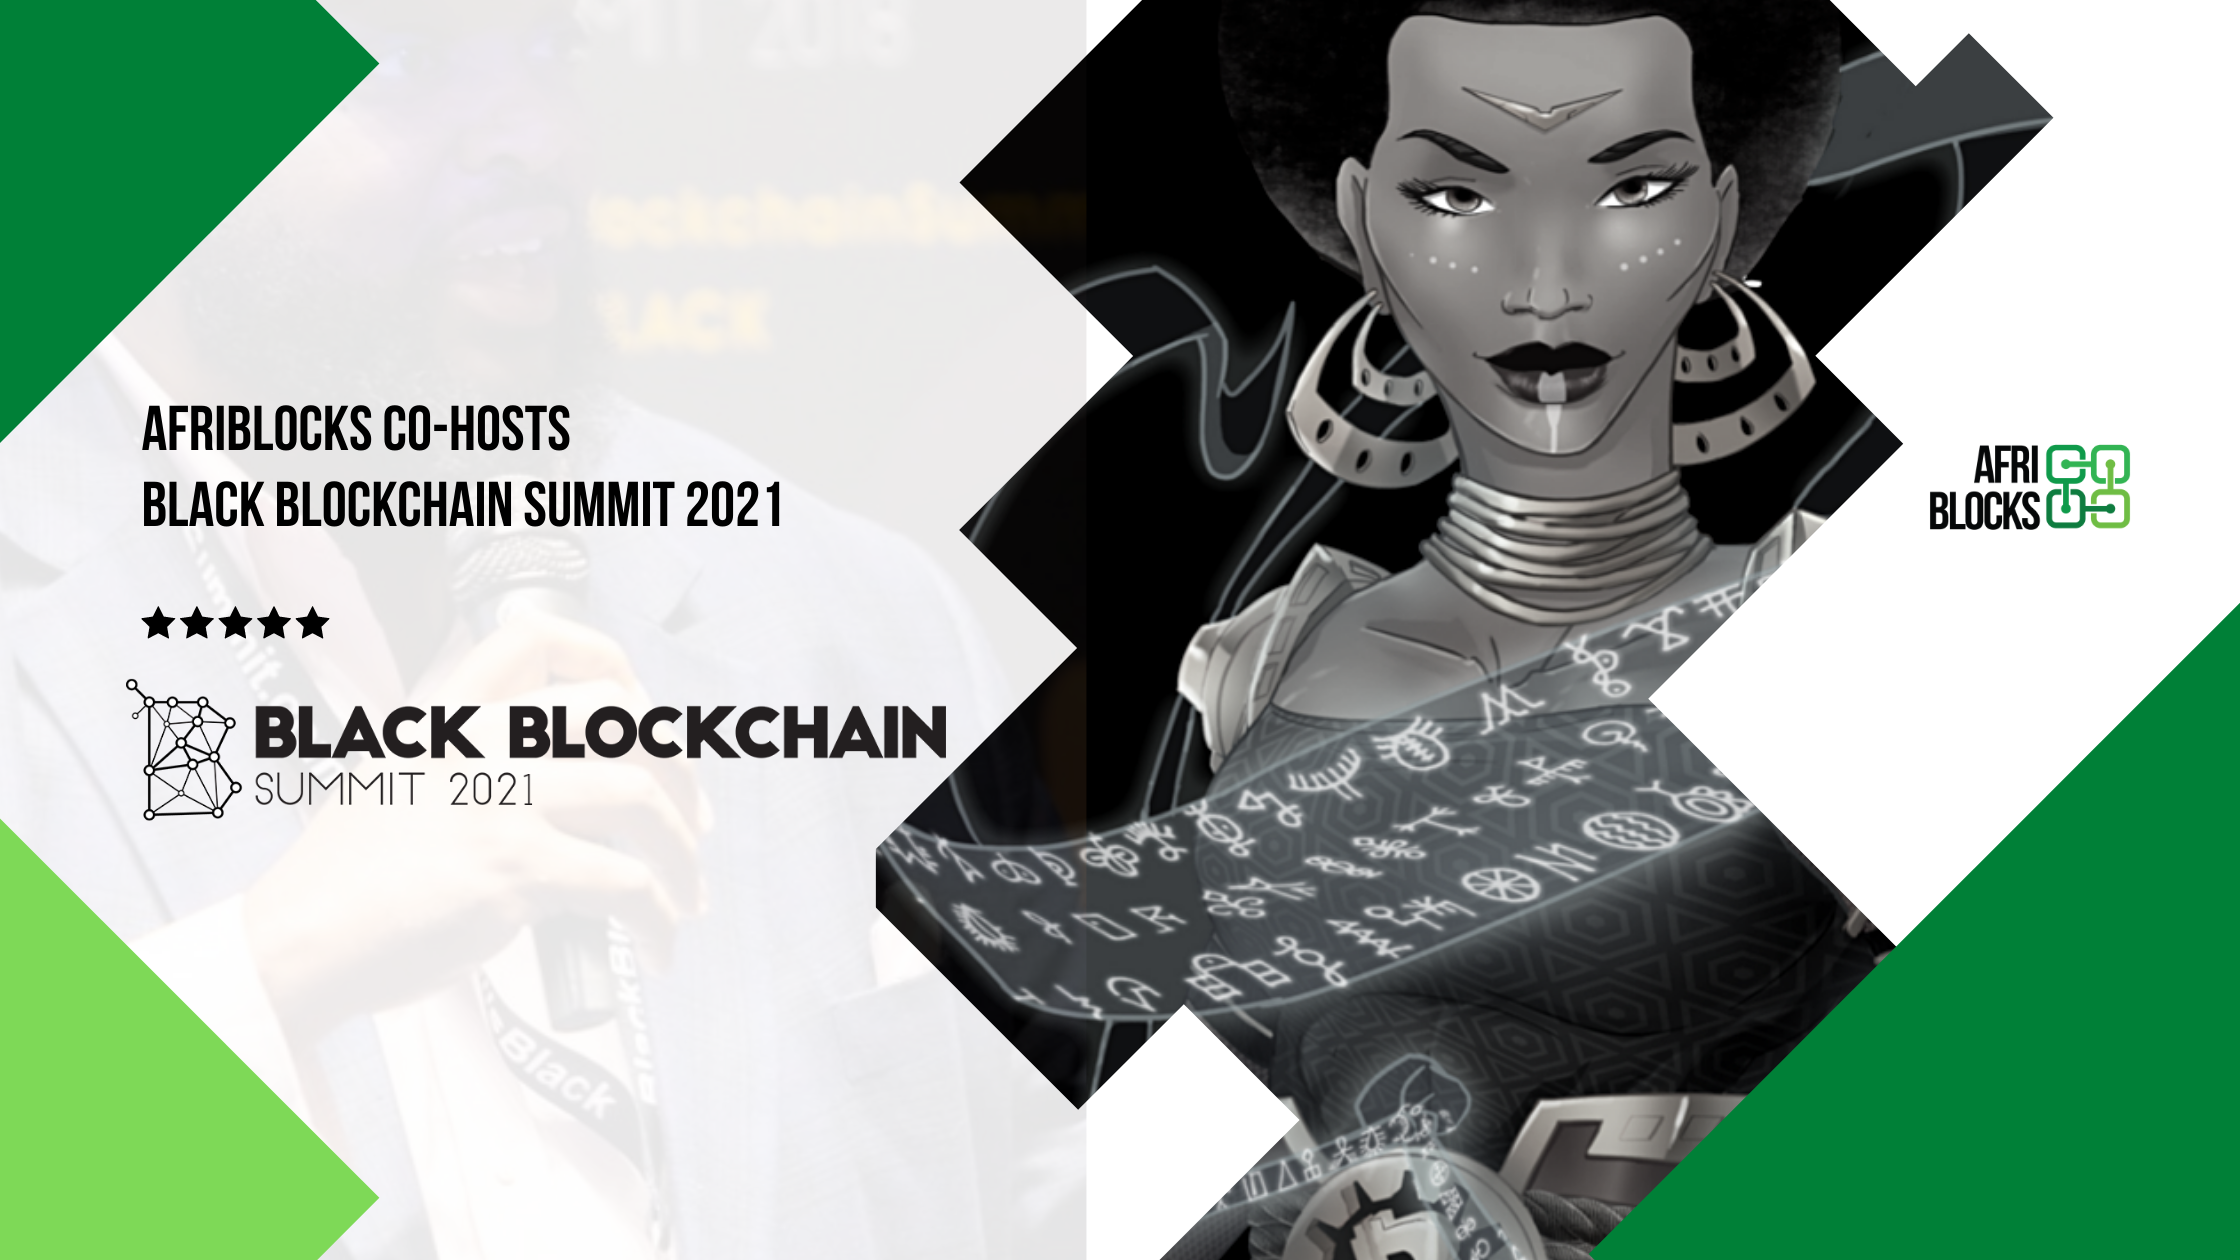 The Black Blockchain Summit 2021, Co-hosted by AfriBlocks